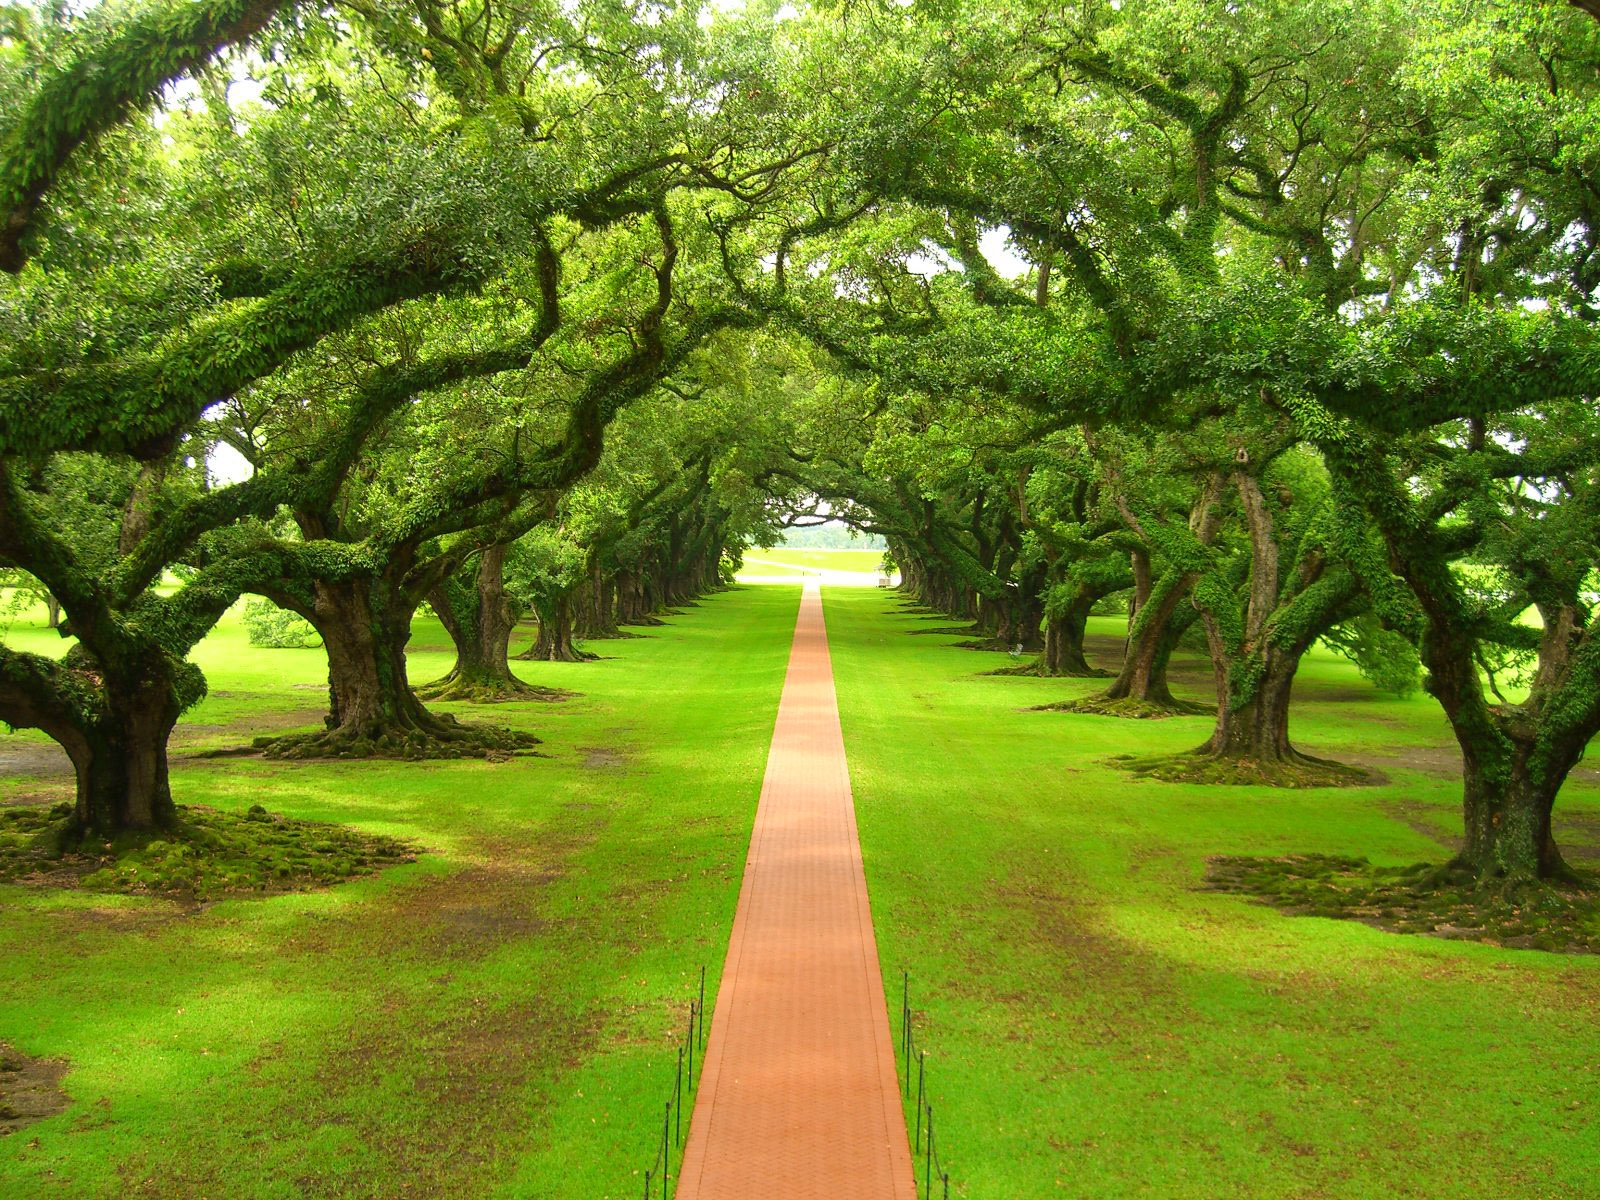 Oak Tree Plantation by Thislilpiggyflew   Desktop Wallpaper 1600x1200